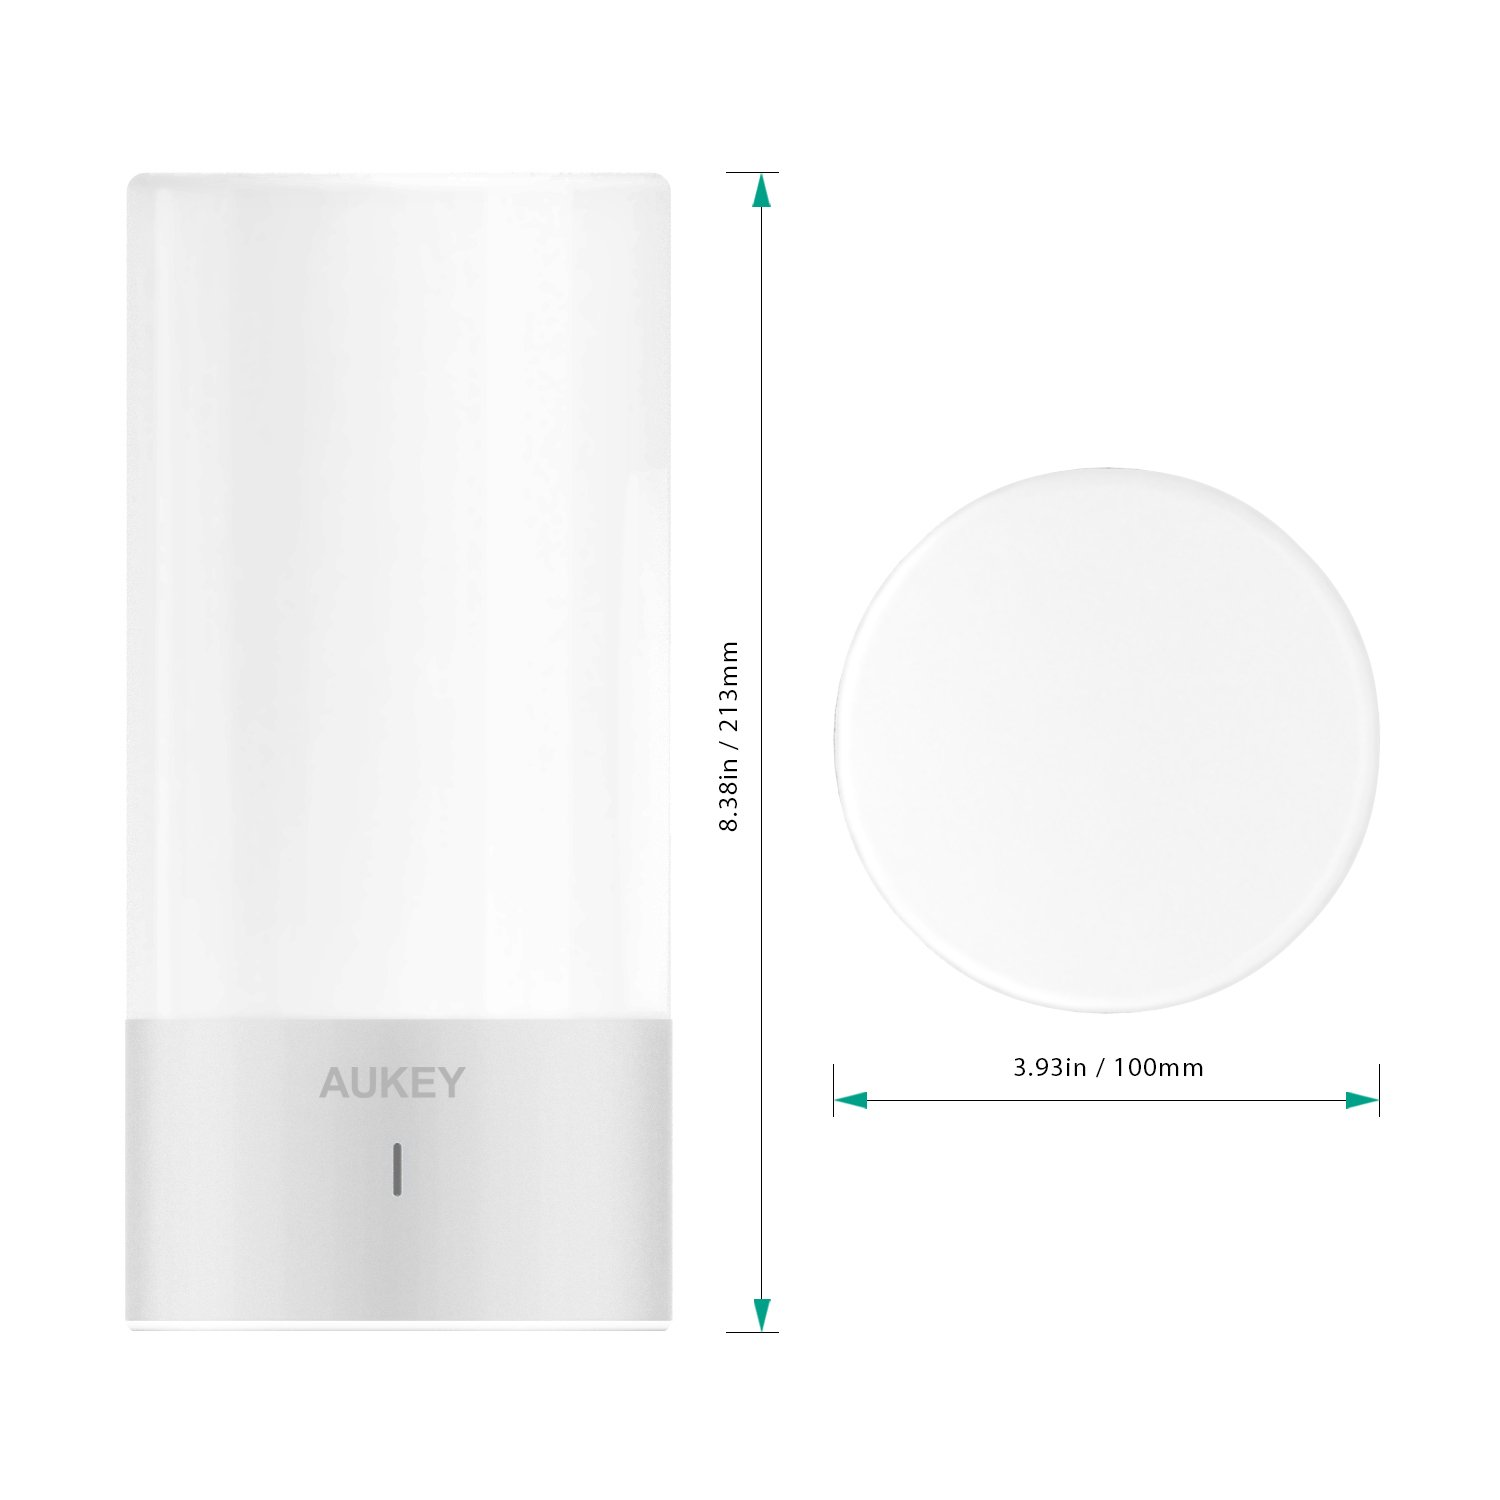 AUKEY Table Lamp, Touch Sensor Bedside Lamps + Dimmable Warm White Light & Color Changing RGB for Bedrooms by AUKEY (Image #7)